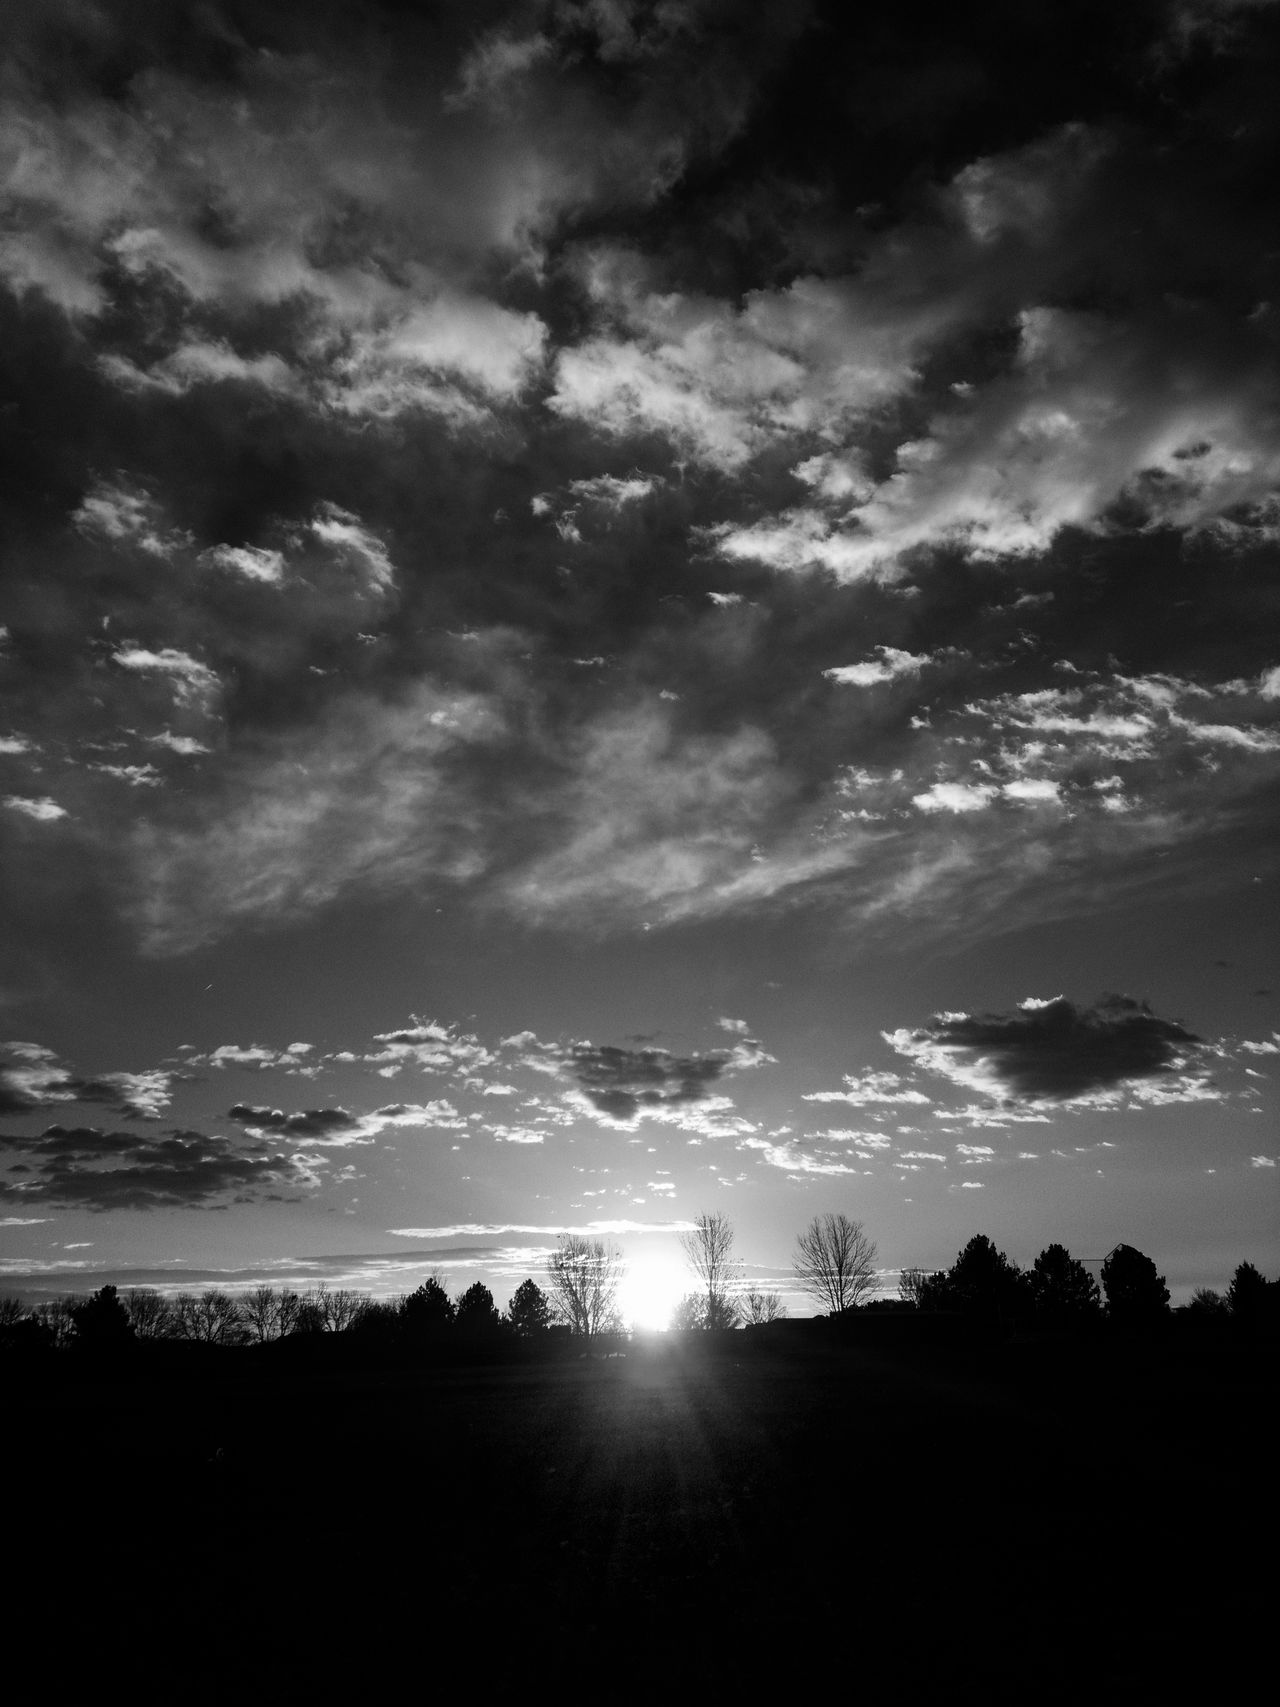 Morning In Mourning Morning Sun Macabre Photo Dramatic Sky Cloudscape Macabre Silhouette Warhol Inspired Sunrise Silhouettes Darkart Dark Art Park Photography Sunrise And Clouds Landscape Silhouette Sunrise Silhouette Sunrise_Collection Beauty In Nature Fall Collection Landscape_Collection Cloudporn Morning Light Illuminated Landscape October Anticolors